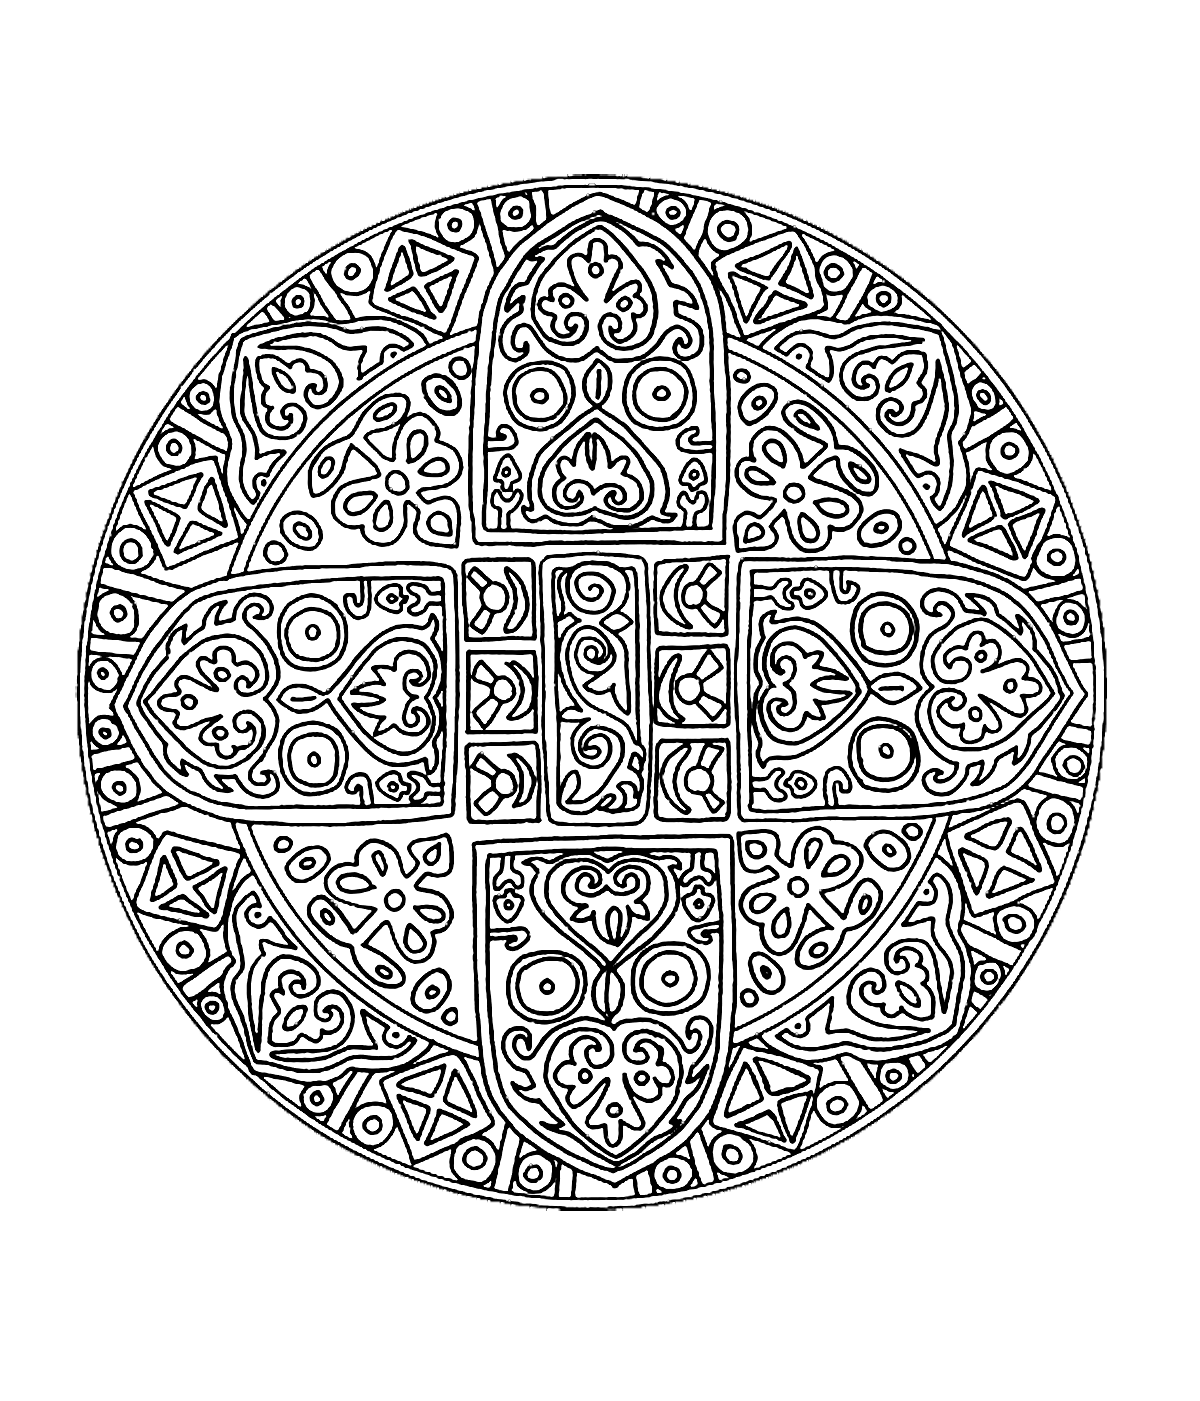 mandalas to color for adults free mandala for to print 1 malas adult coloring mandalas for to adults color